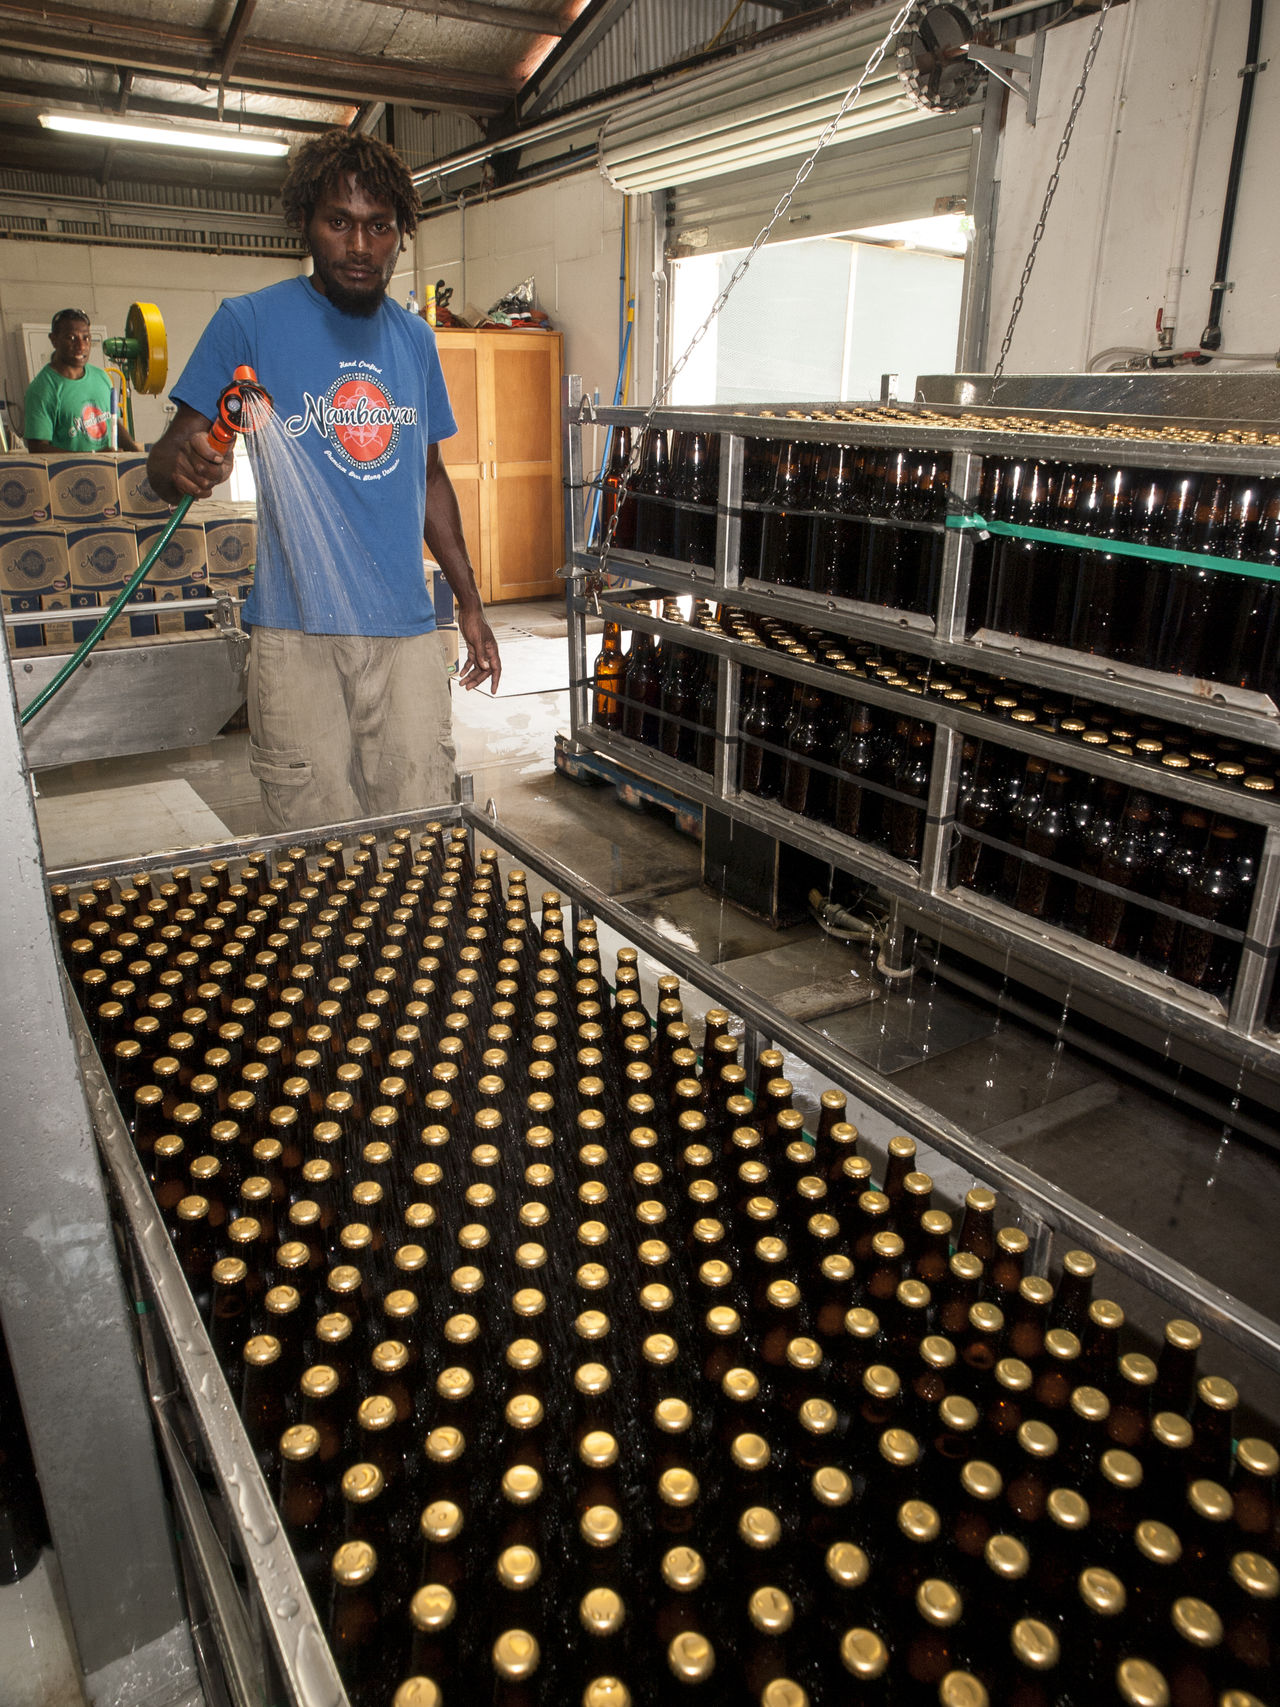 Nambawan Brewing Co Lini Highway Port Vila Vanuatu Abundance Day Front View Large Group Of Objects Nambawan Brewing Co Person Port Vila Vanuatu Railing Retail  Vivid International